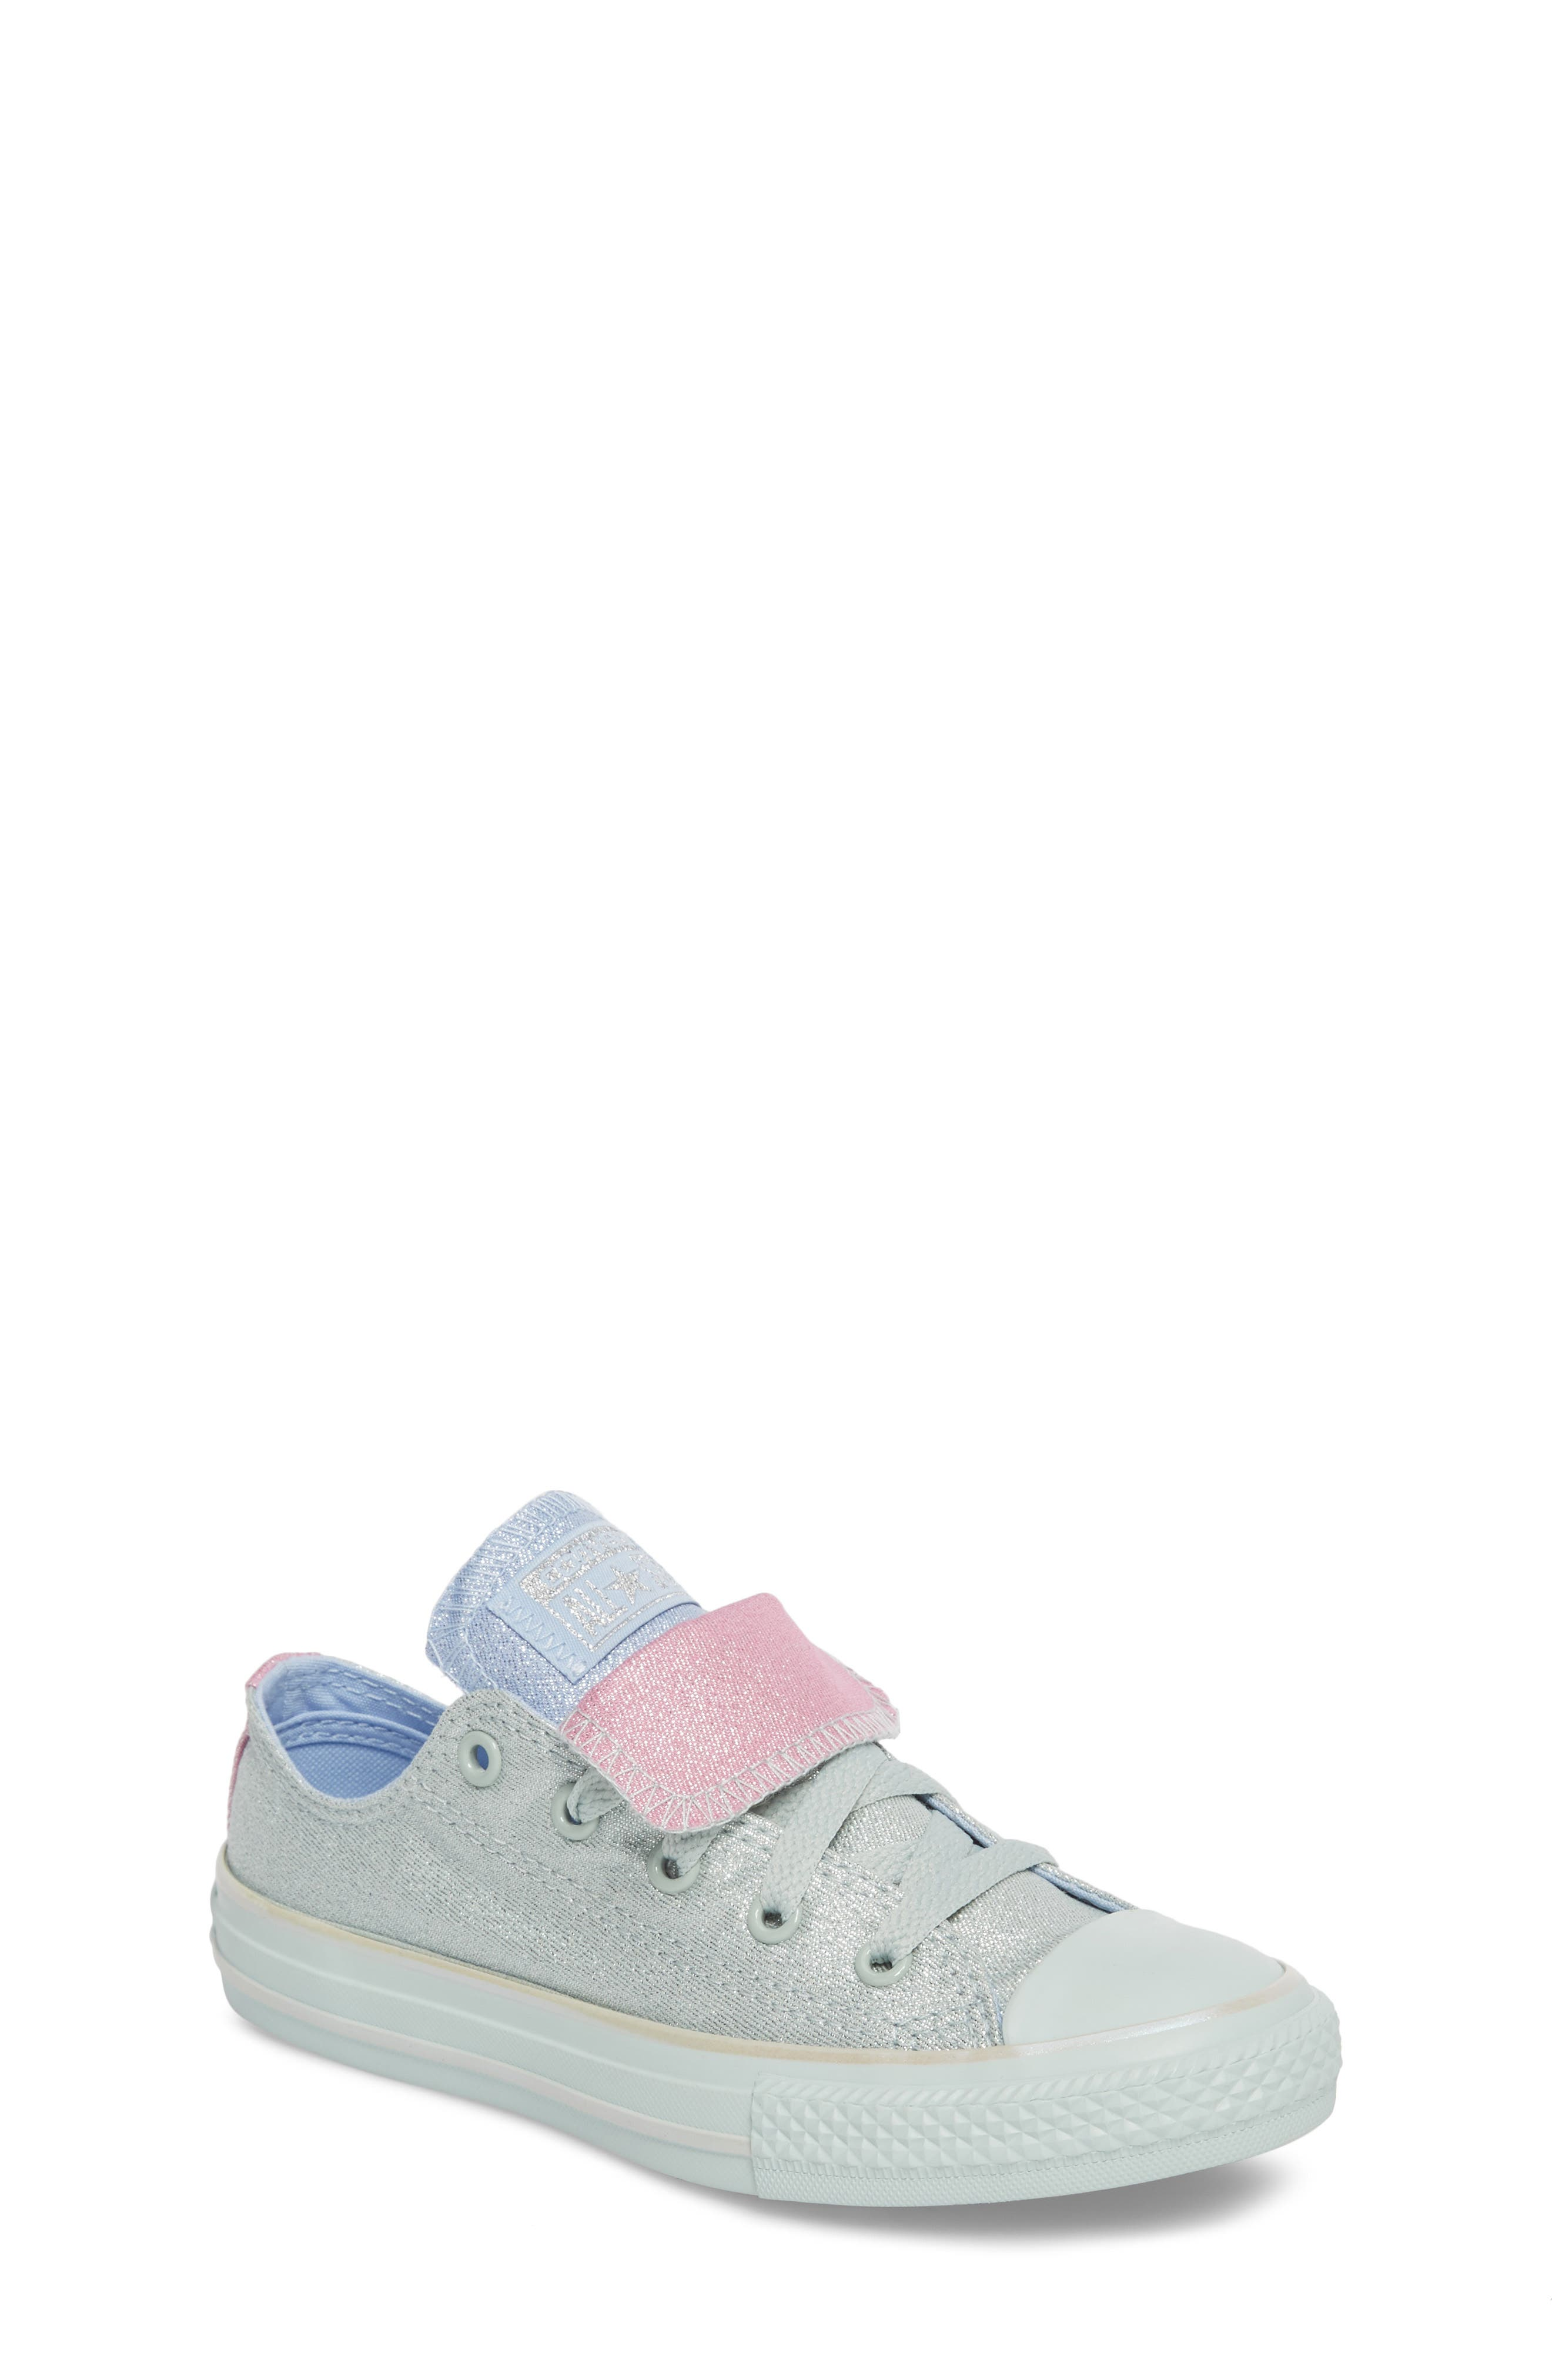 Main Image - Converse All Star® Shimmer Double Tongue Sneaker (Baby, Walker, Toddler, Little Kid & Big Kid)